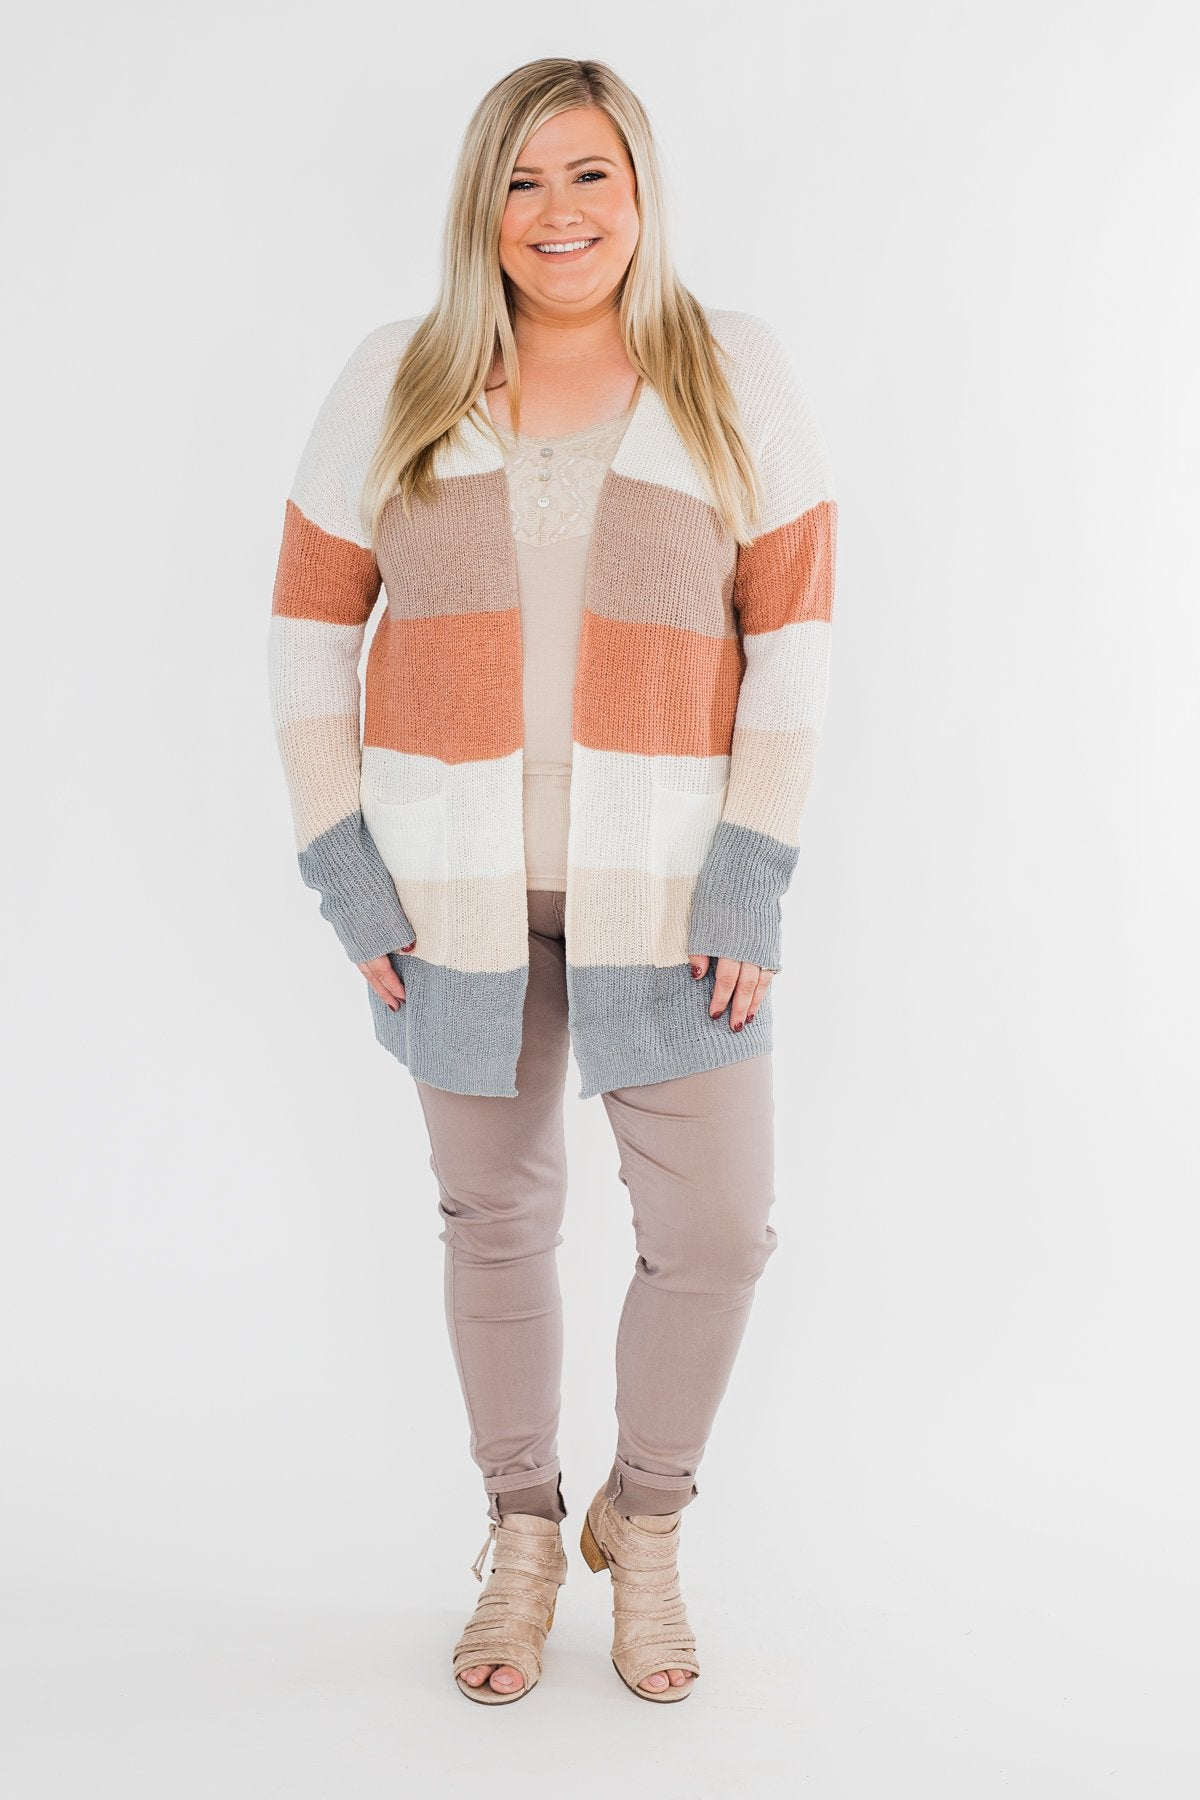 Long Knitted Color Block Cardigan- Neutral Tones